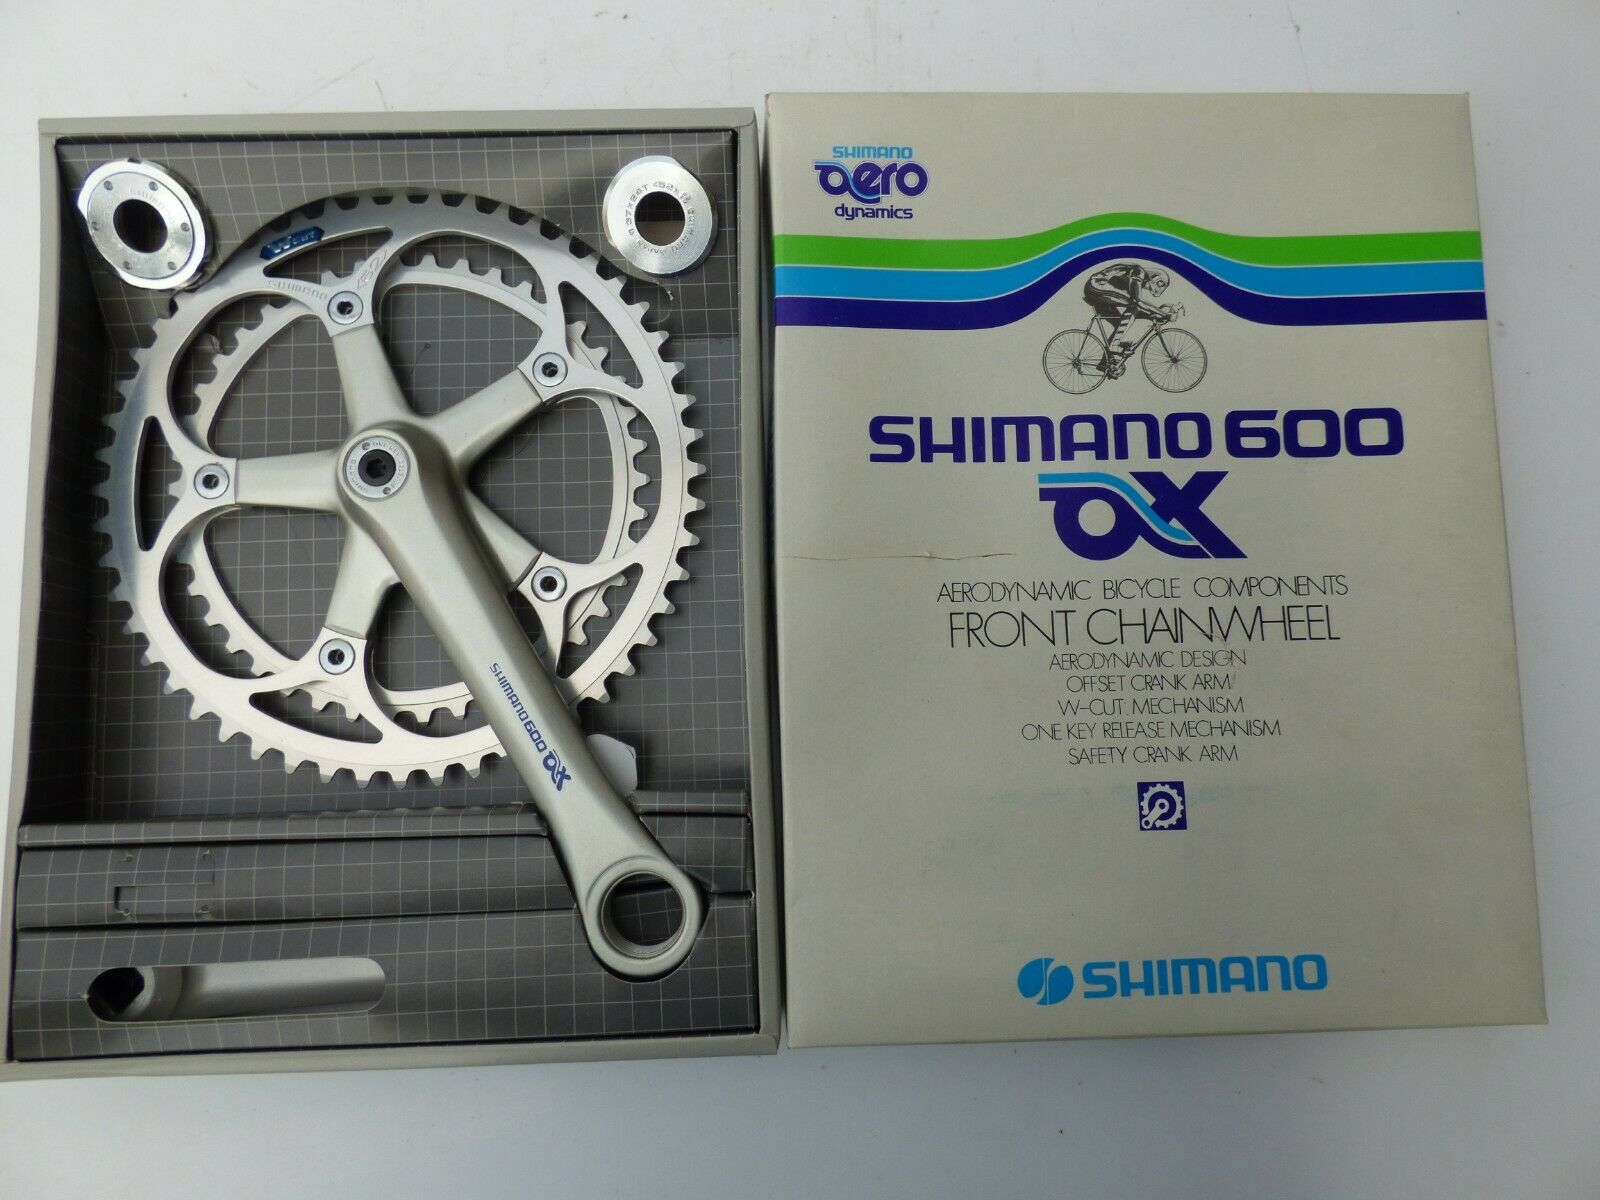 SHIMANO 600 AX FC-6300 CRANKSET 42 52 + ENGLISH BB - NOS - NIB